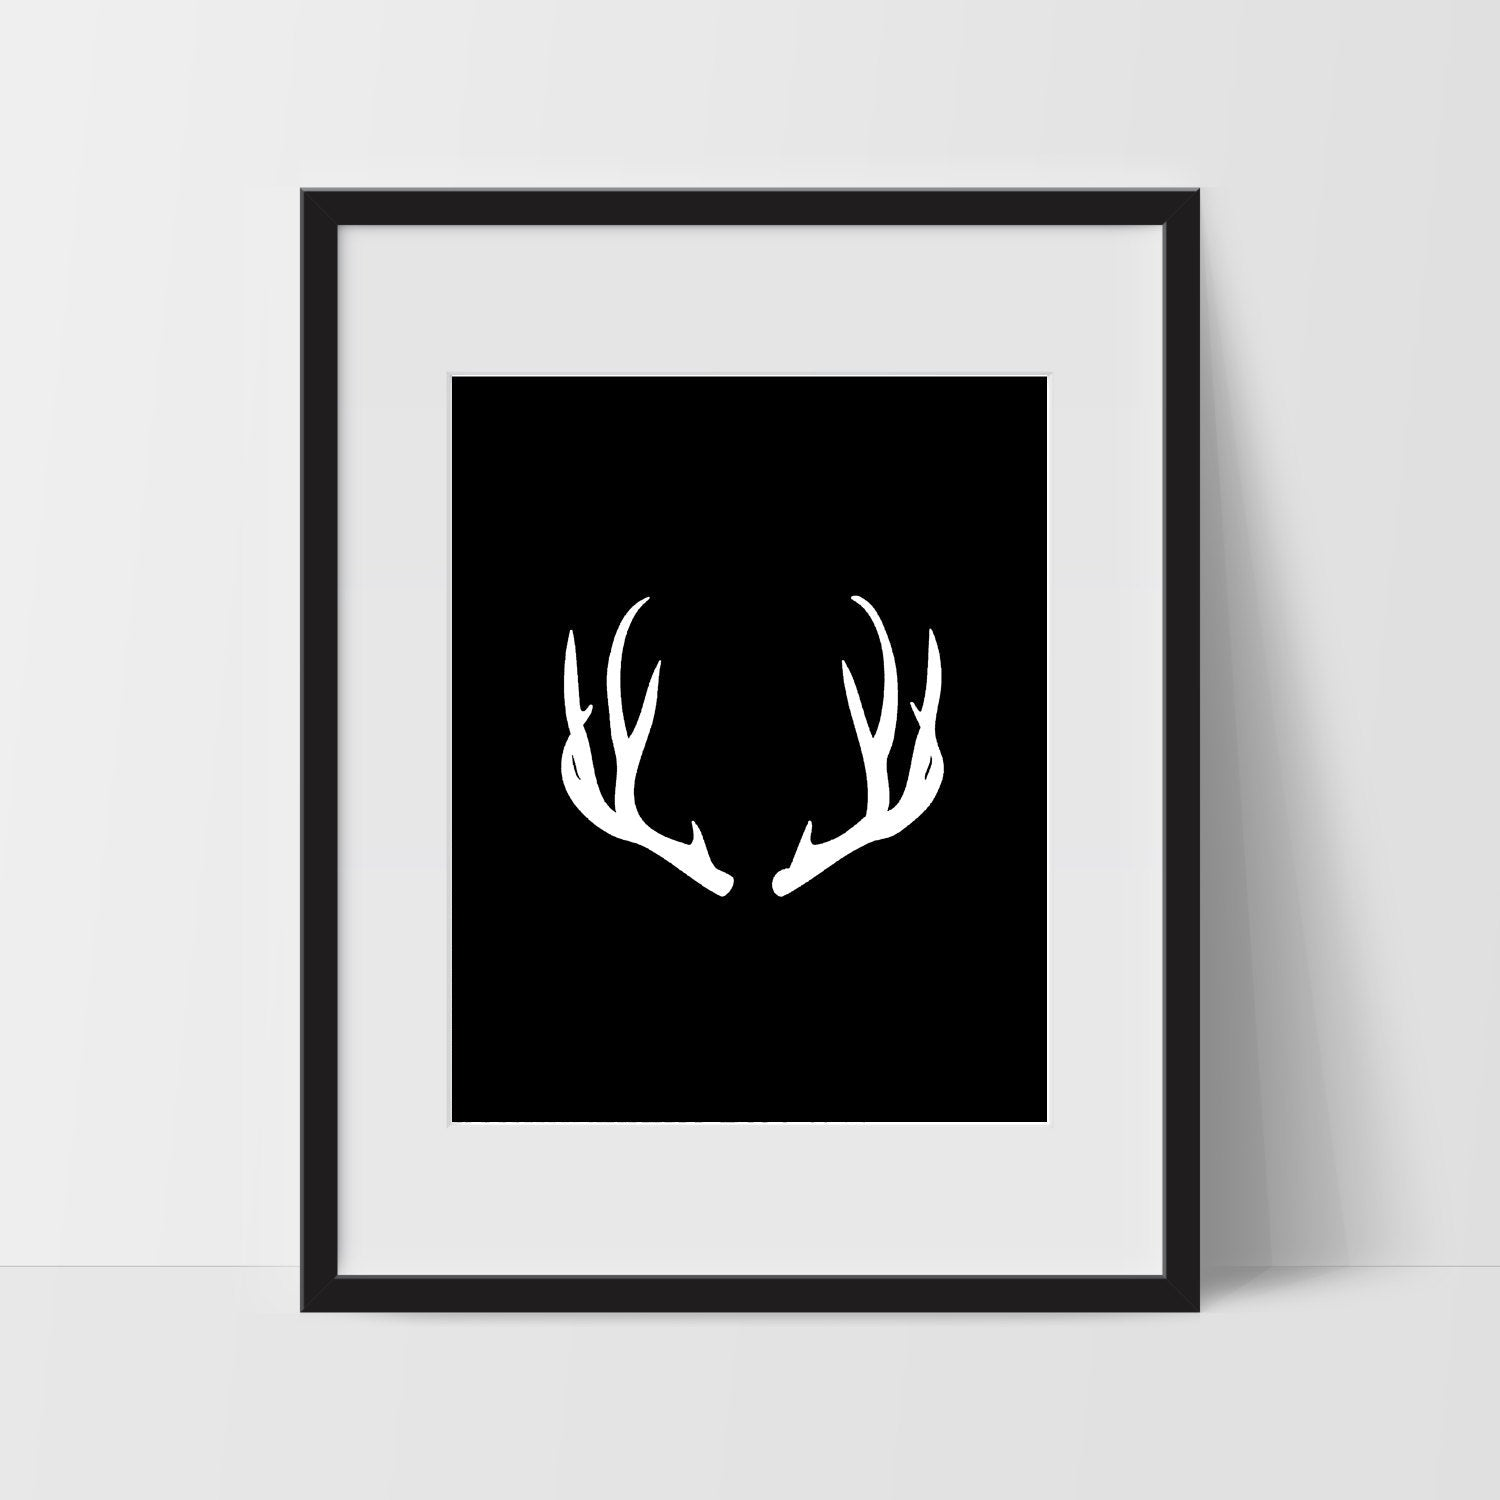 Wall Print Art, Antler Art, Boho Print Decor, Digital Art Print, Antler Print, 8x10, Black, White, Minimalist Prints, Black and White